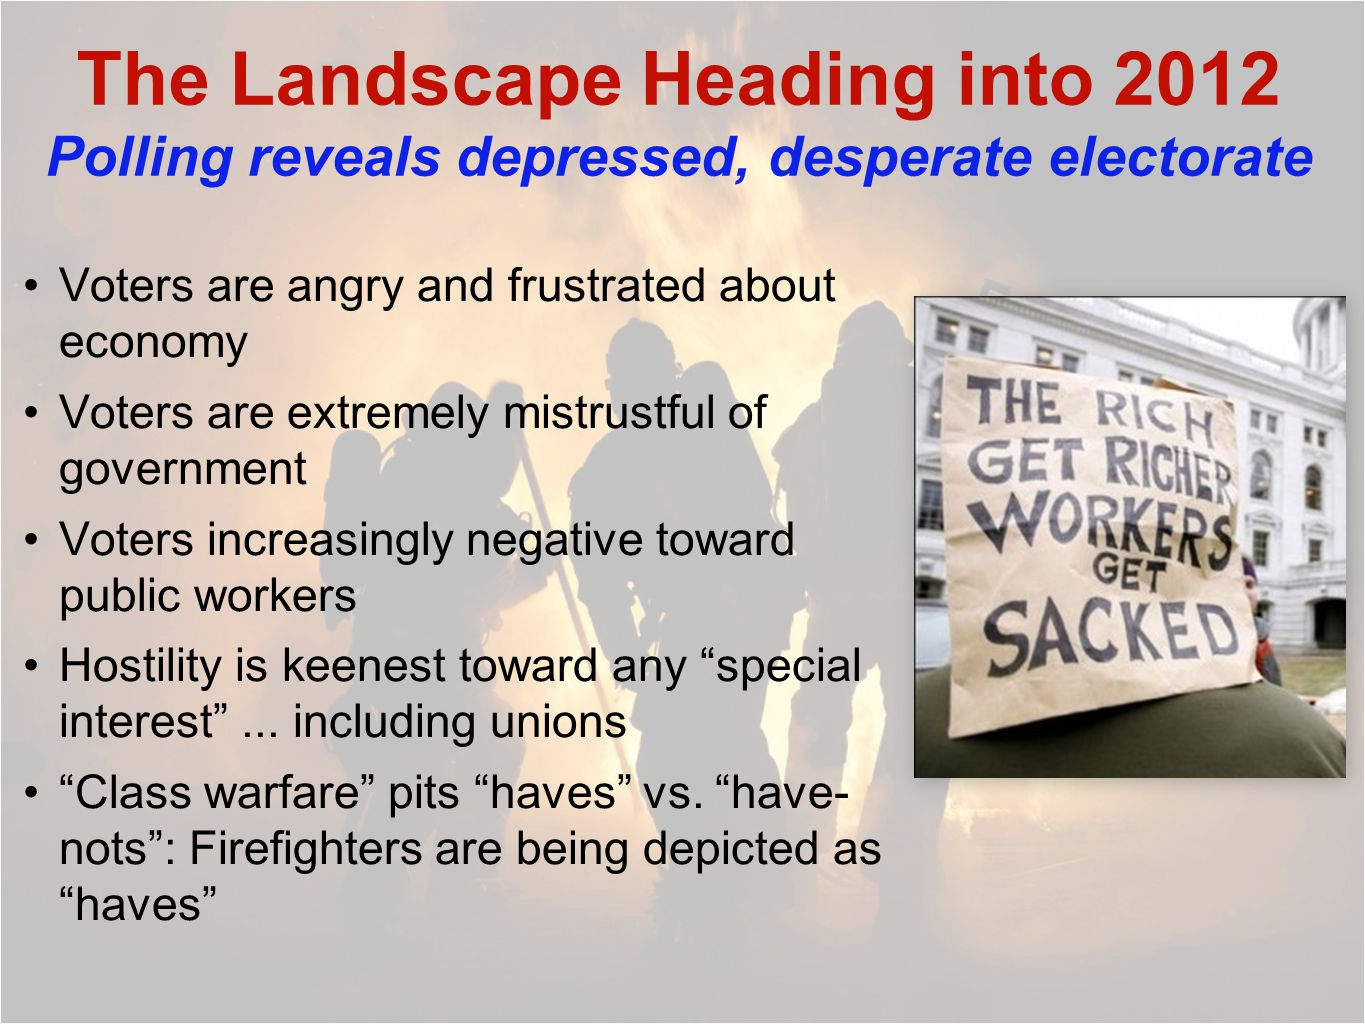 The Landscape Heading into 2012 Polling reveals depressed, desperate electorate Voters are angry and frustrated about economy Voters are extremely mistrustful of government Voters increasingly negative toward public workers Hostility is keenest toward any special interest ...